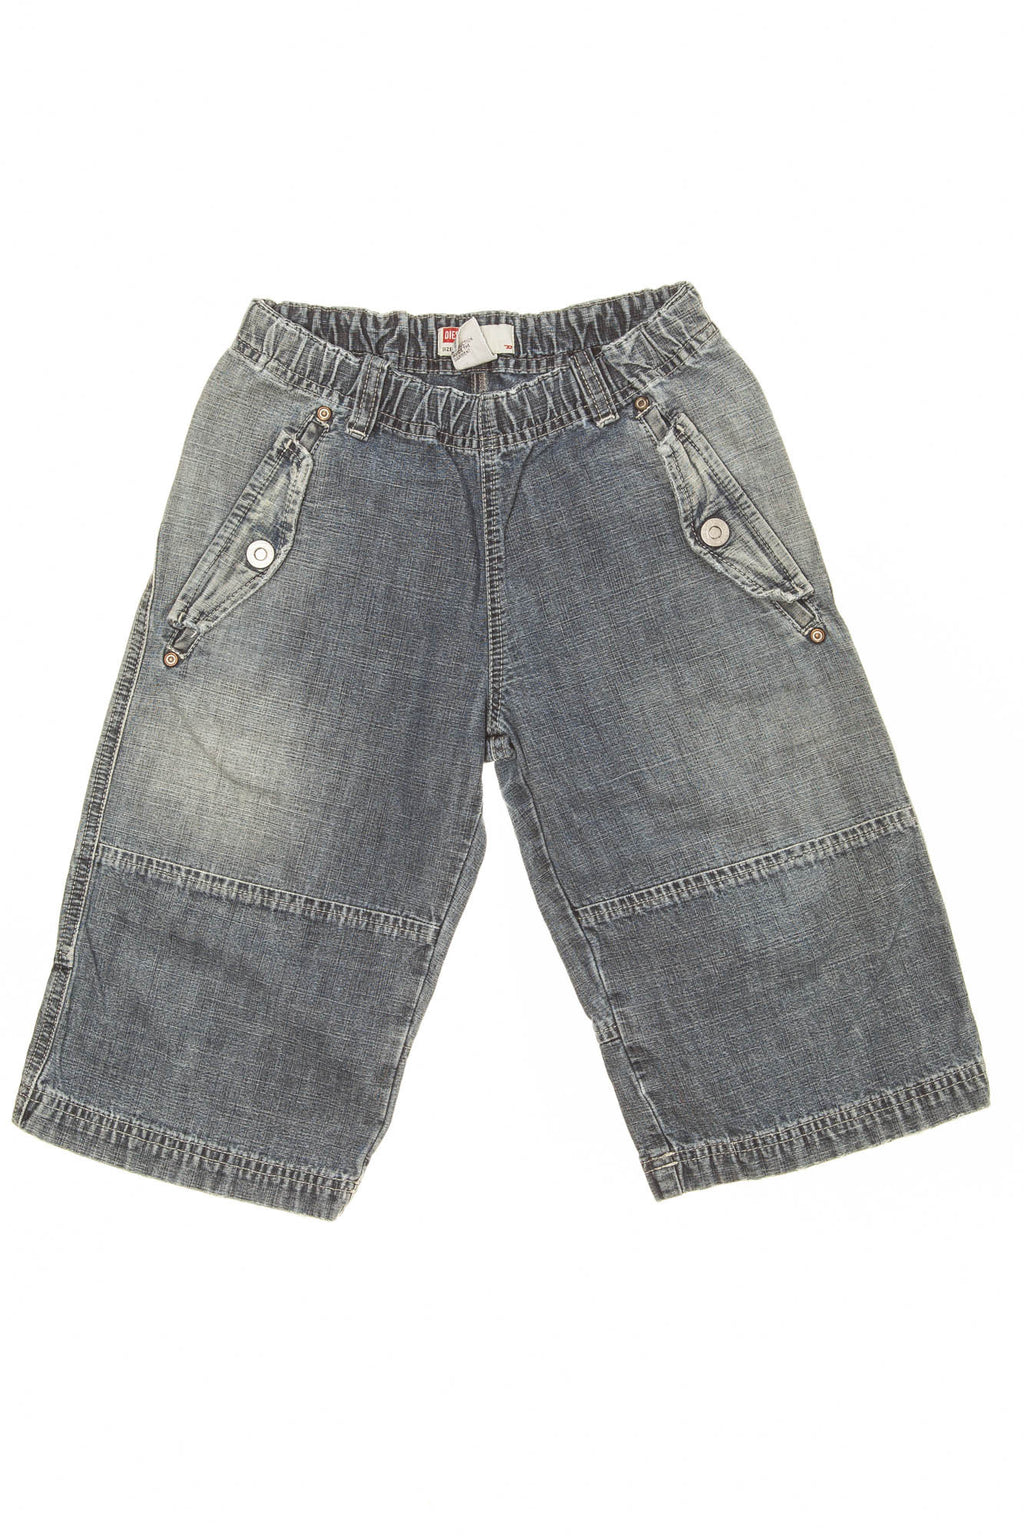 Diesel - Denim Shorts - 8